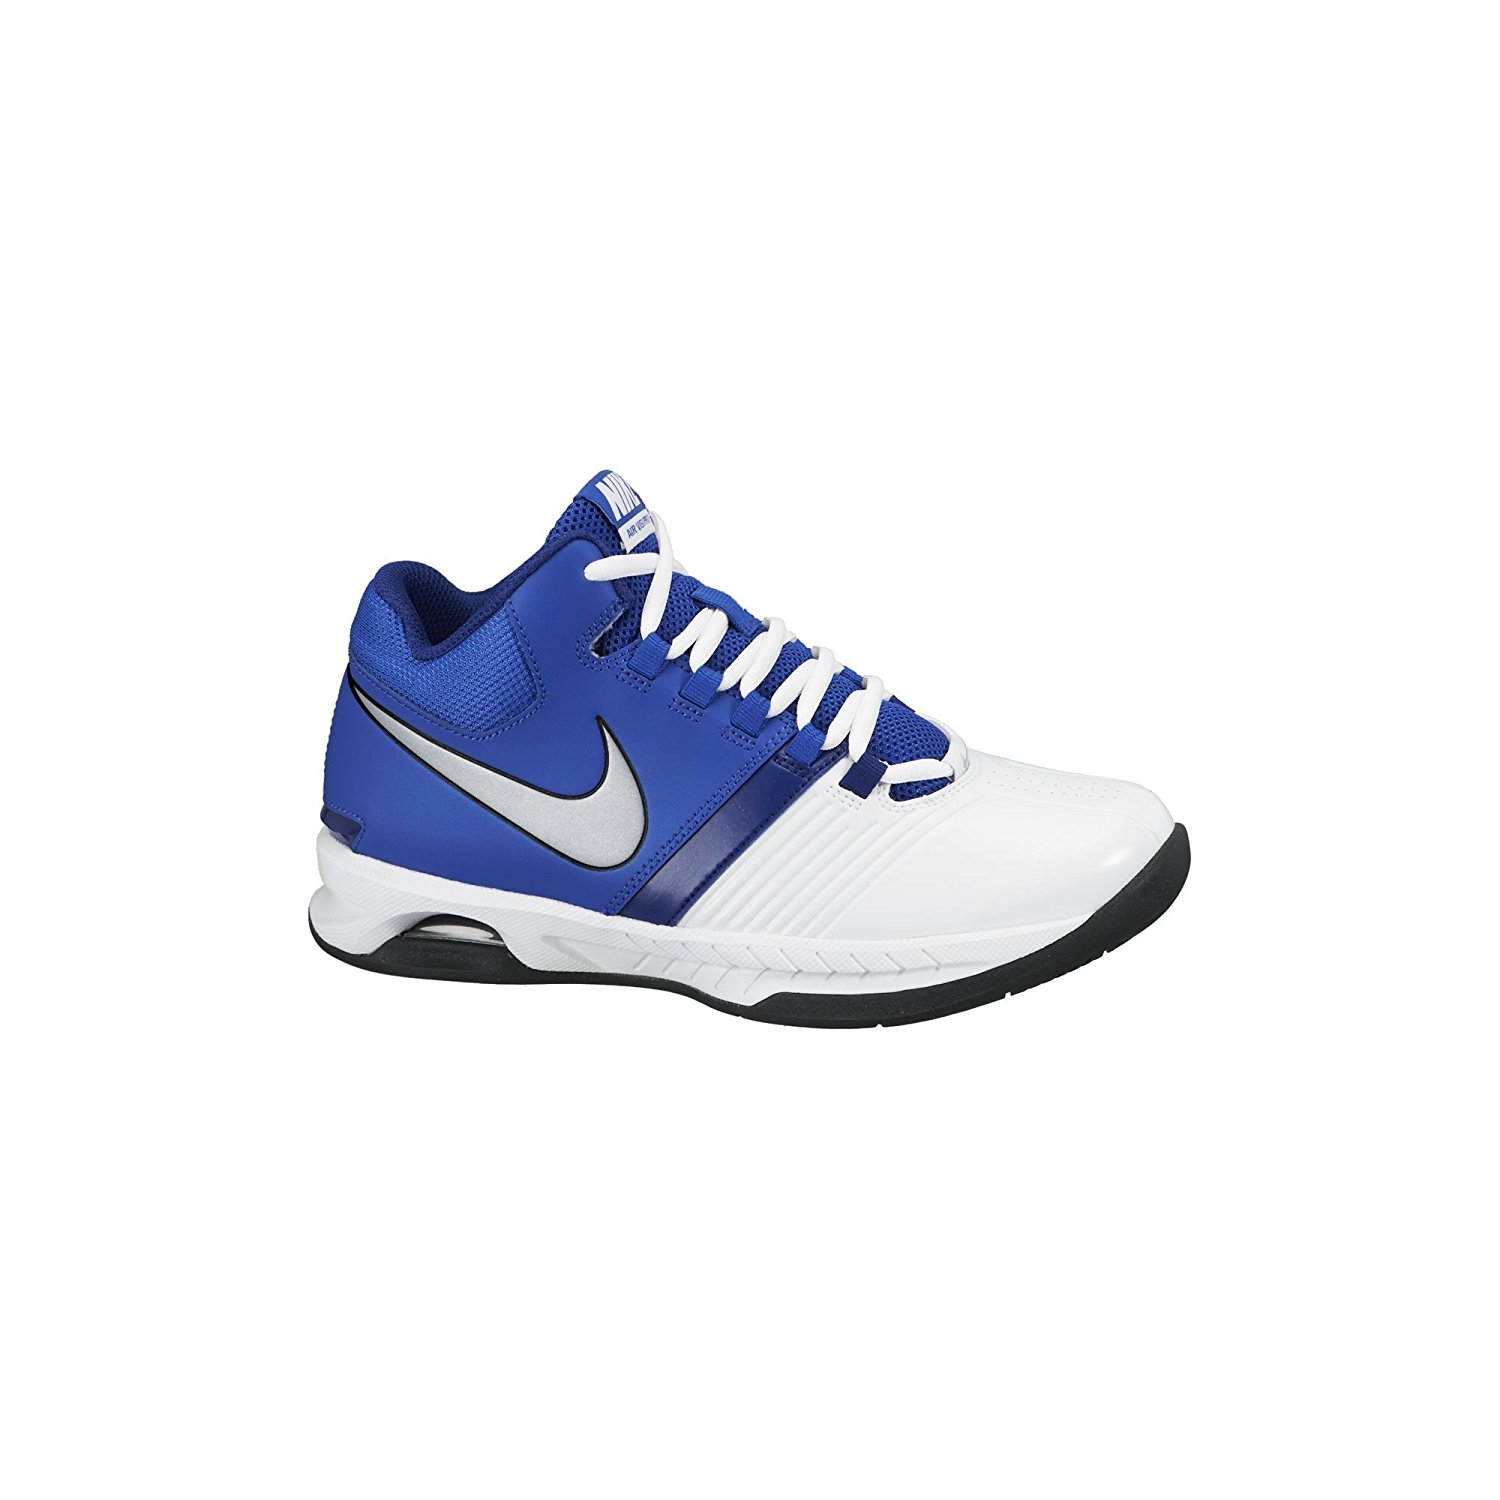 edfa3608ebe9 Get Quotations · Nike Women s Air Visi Pro V Basketball Shoes